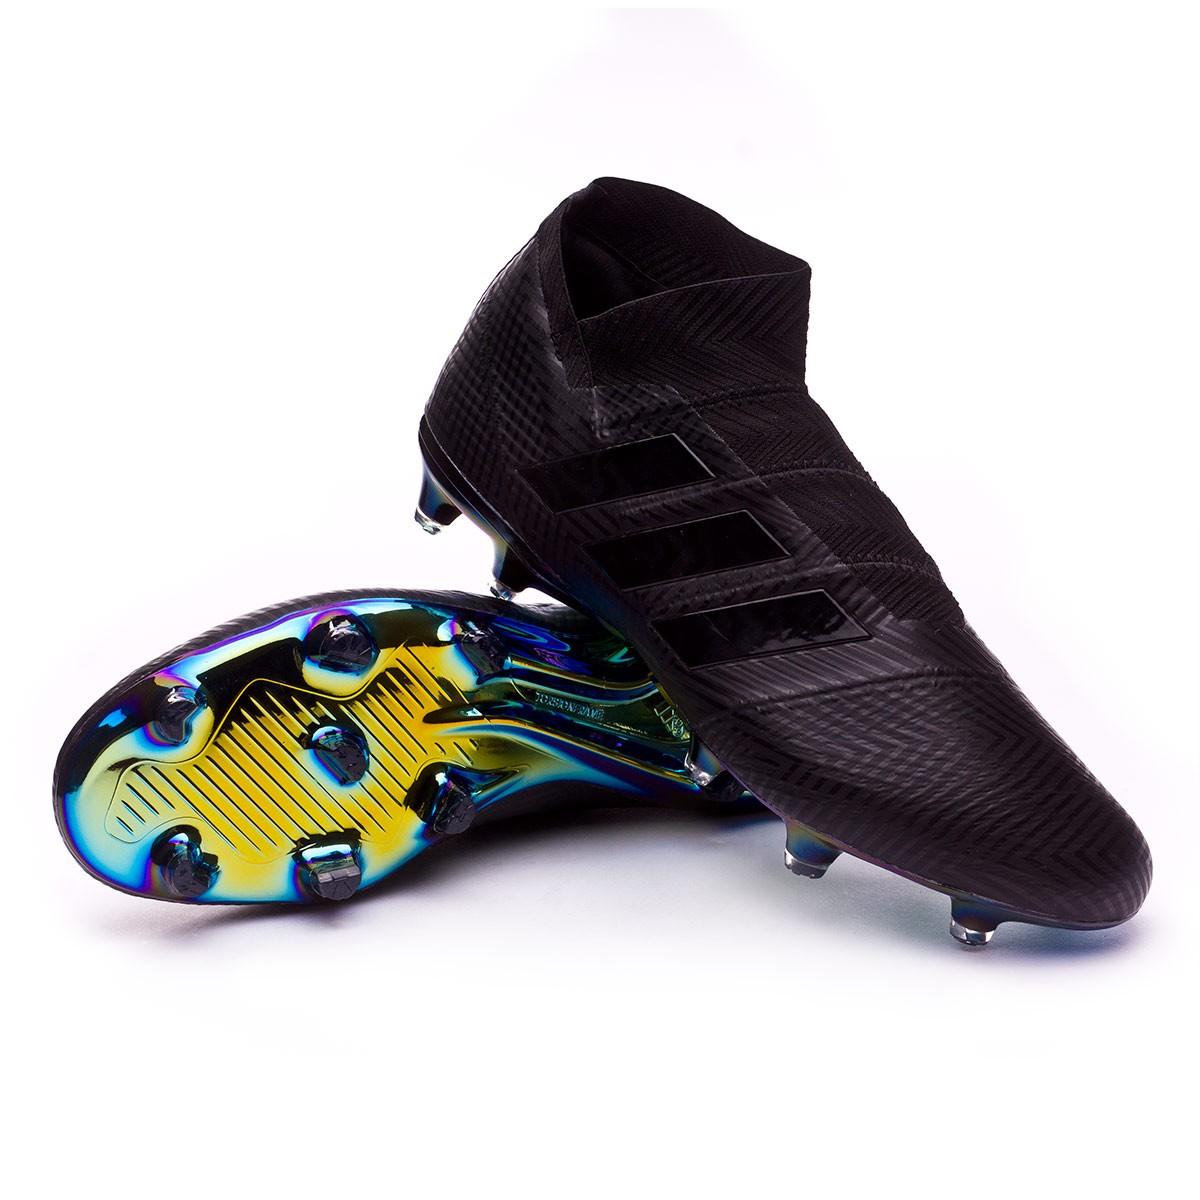 079f7284f773 Football Boots adidas Nemeziz 18+ FG Core black-White - Football ...